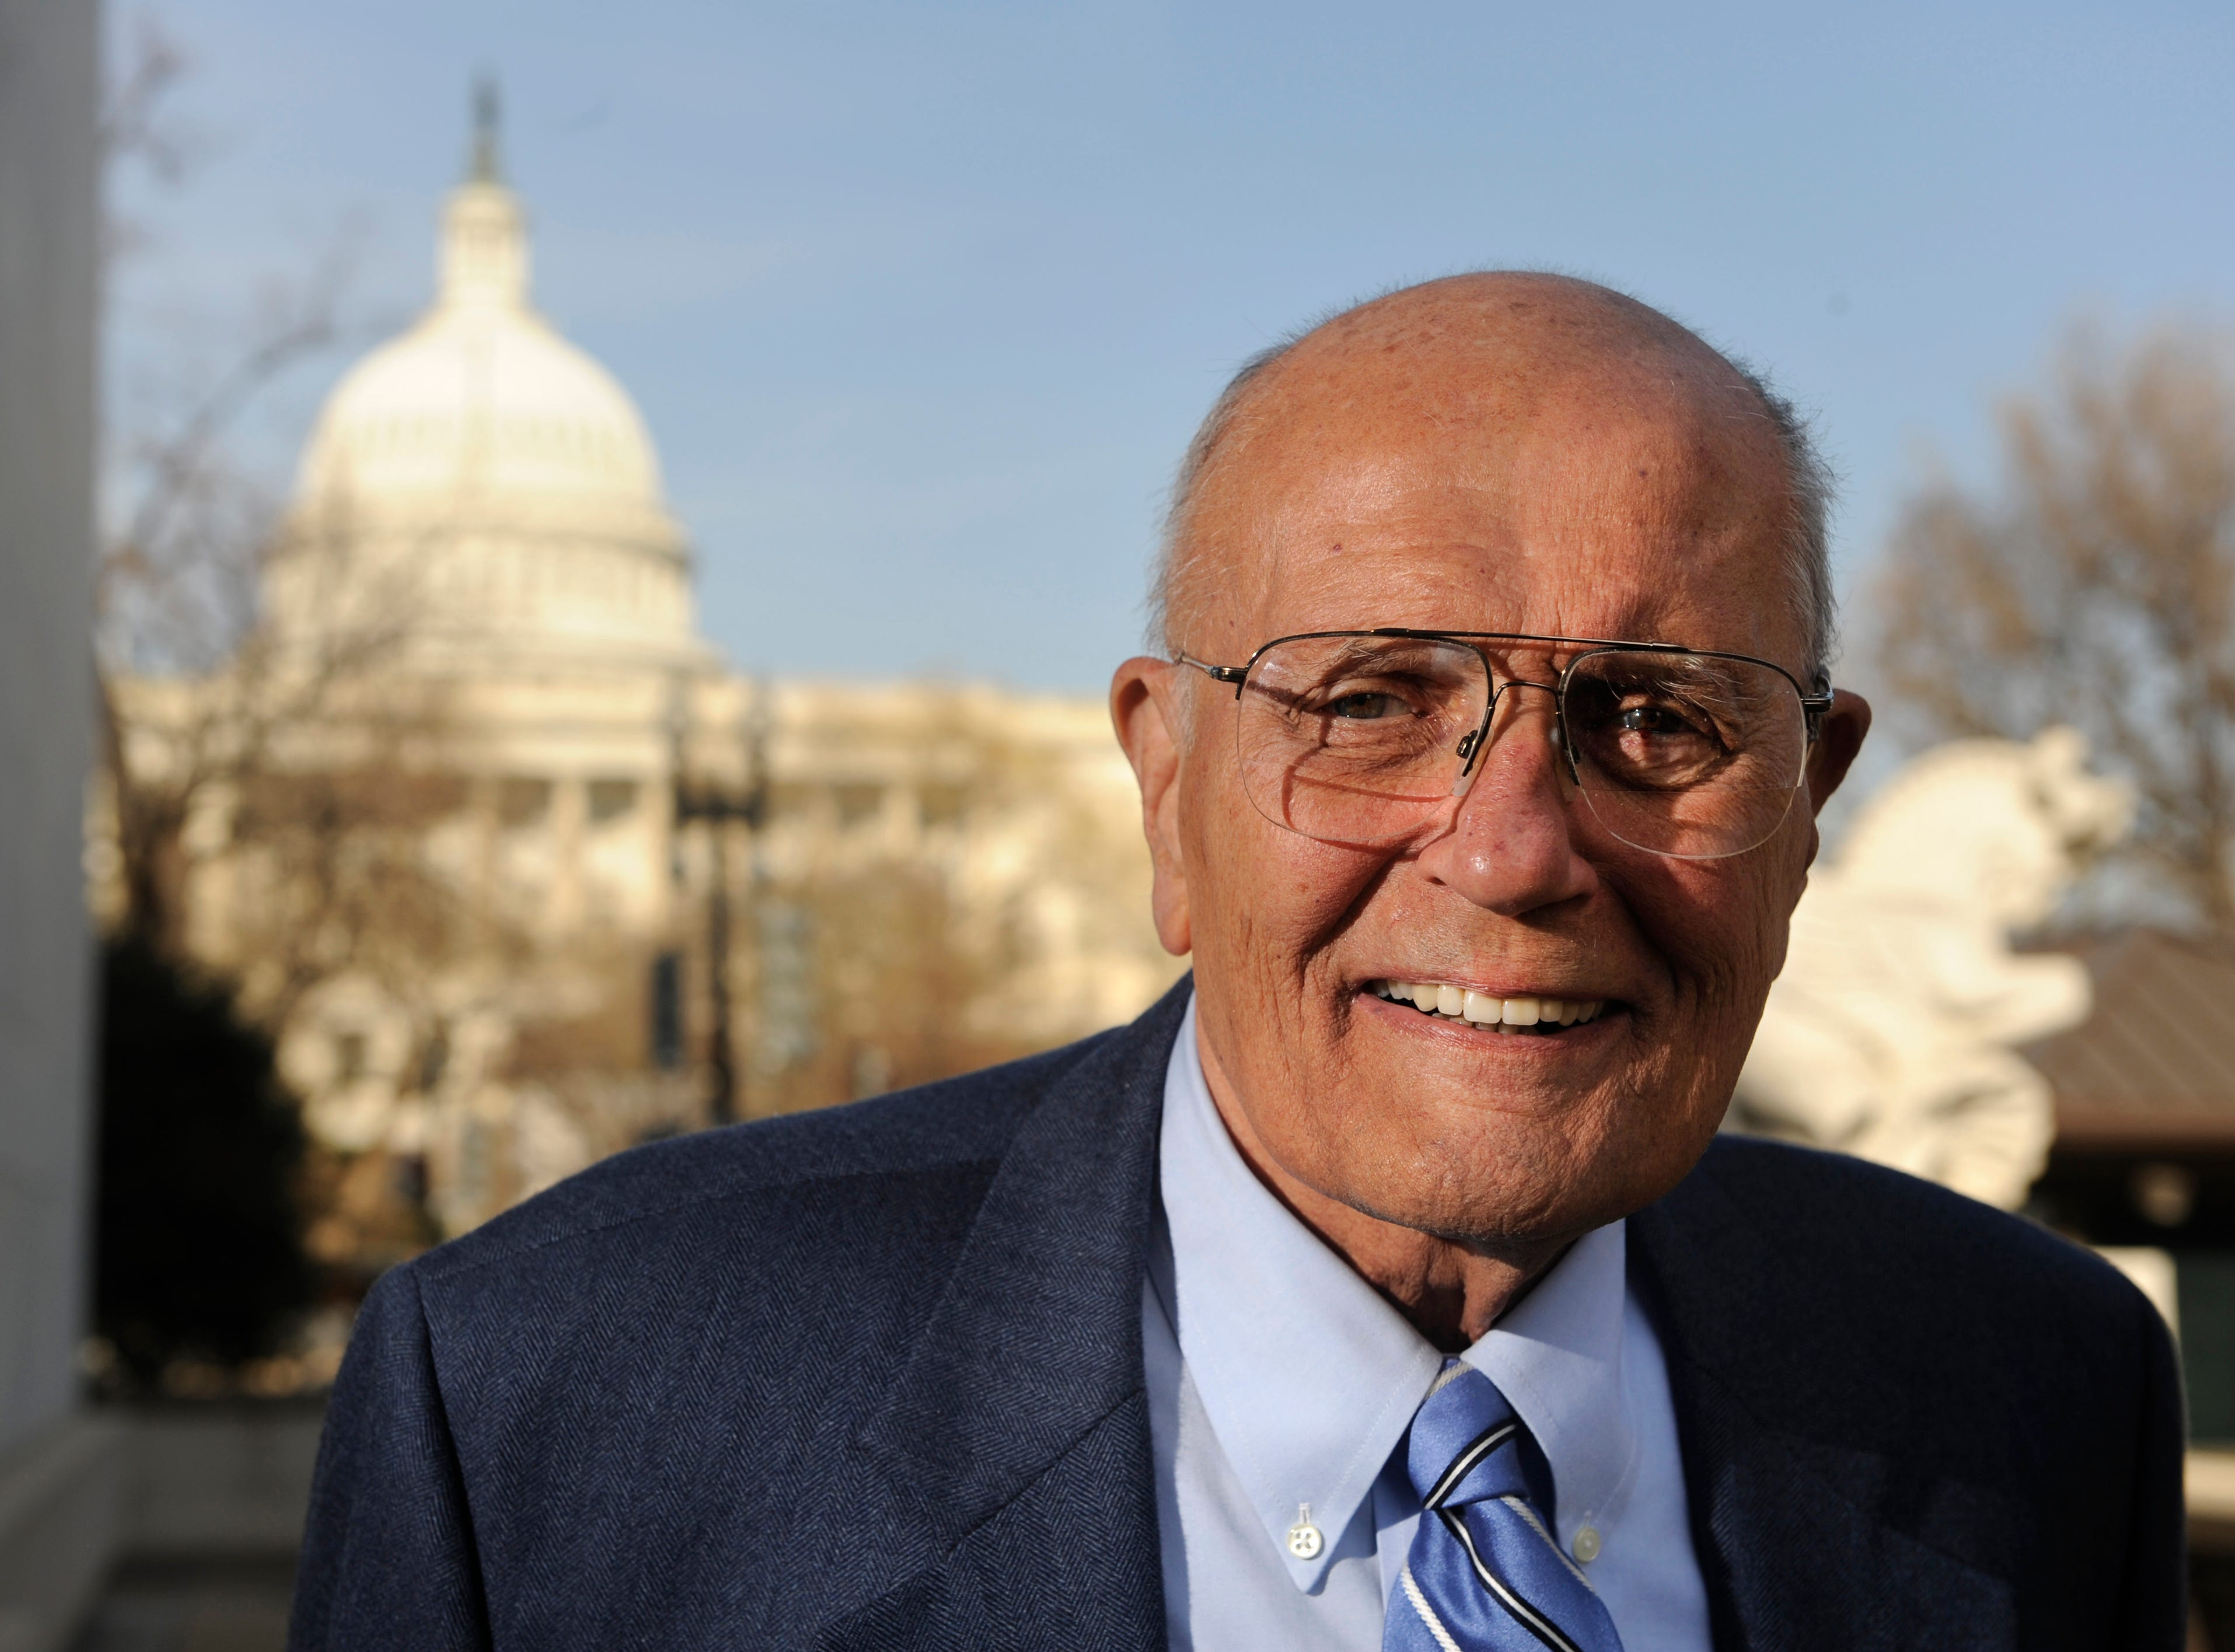 John Dingell Jr., the statesman from Dearborn who served longer in Congress than anyone,  died Thursday, February 7, 2019.  He's seen here working at his Washington D.C. office in the Rayburn House Building  in 2009.